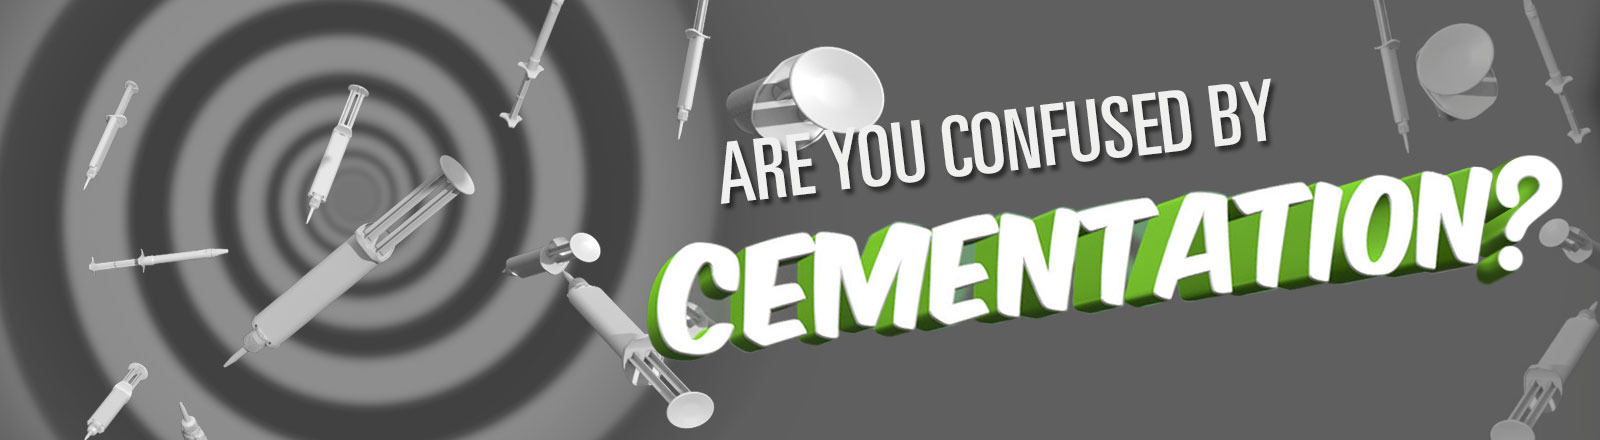 cement-anxiety